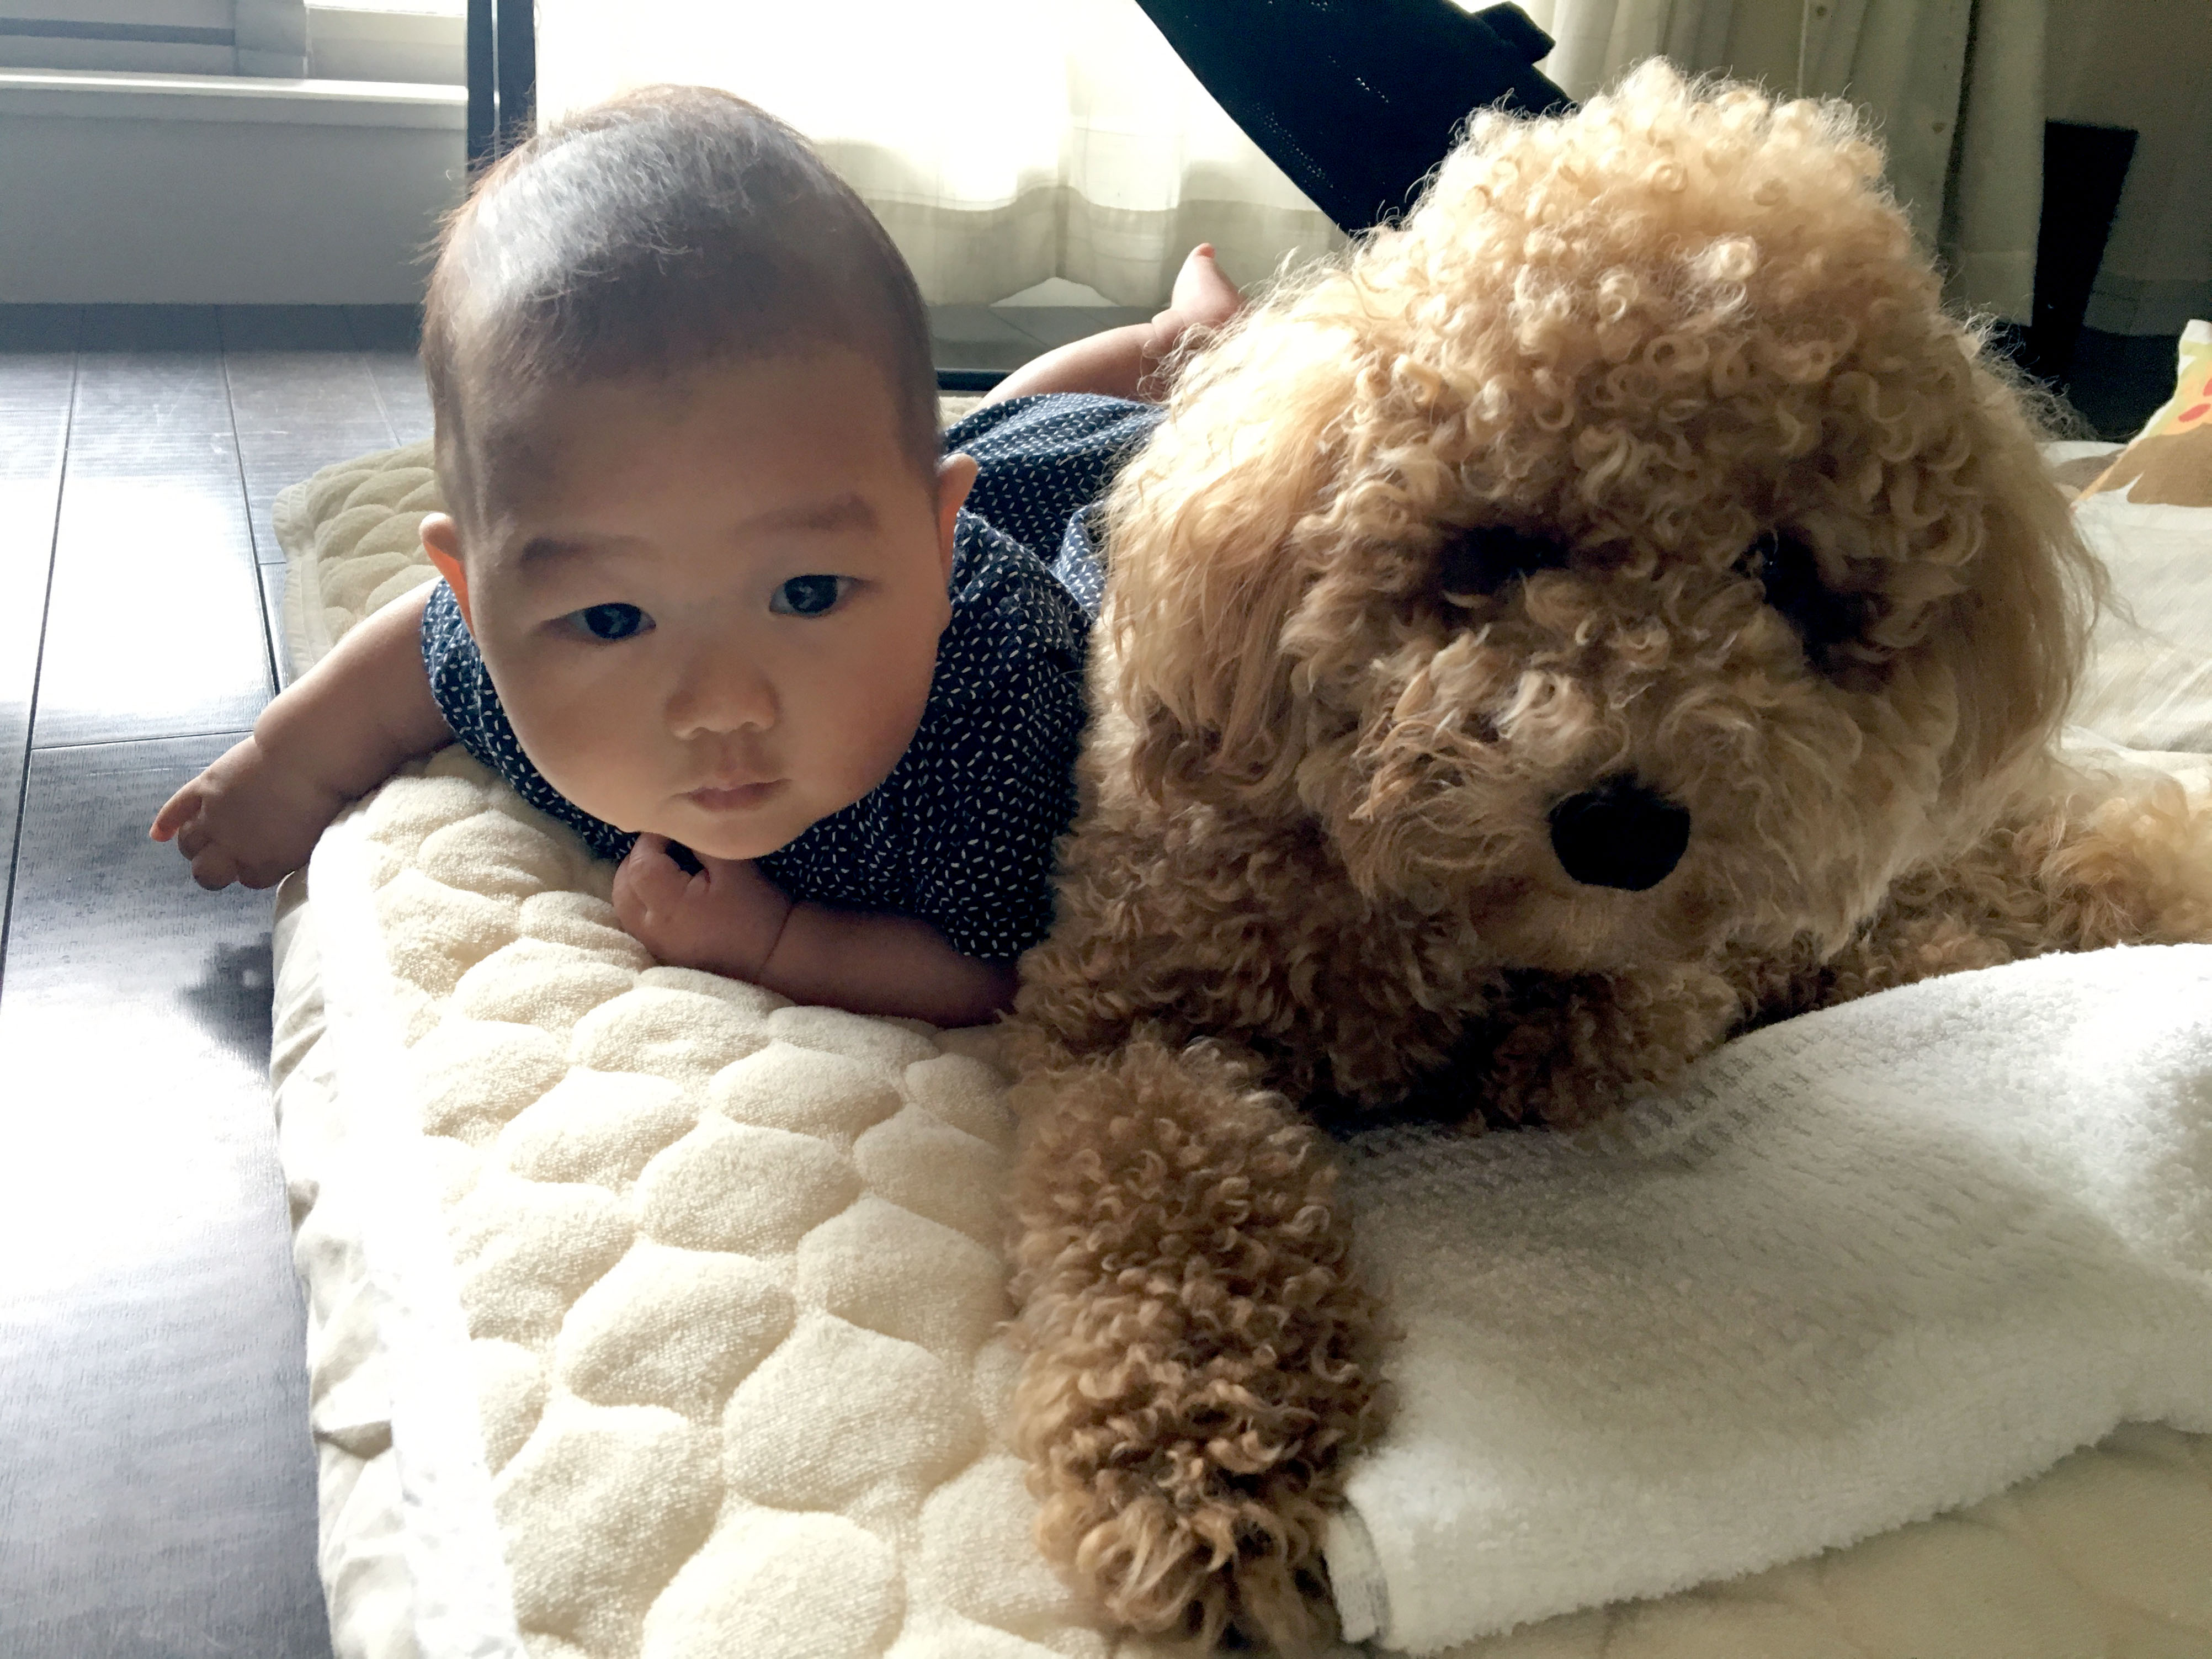 Baby S Brotherly Bond With Real Teddy Bear Toy Poodle Will